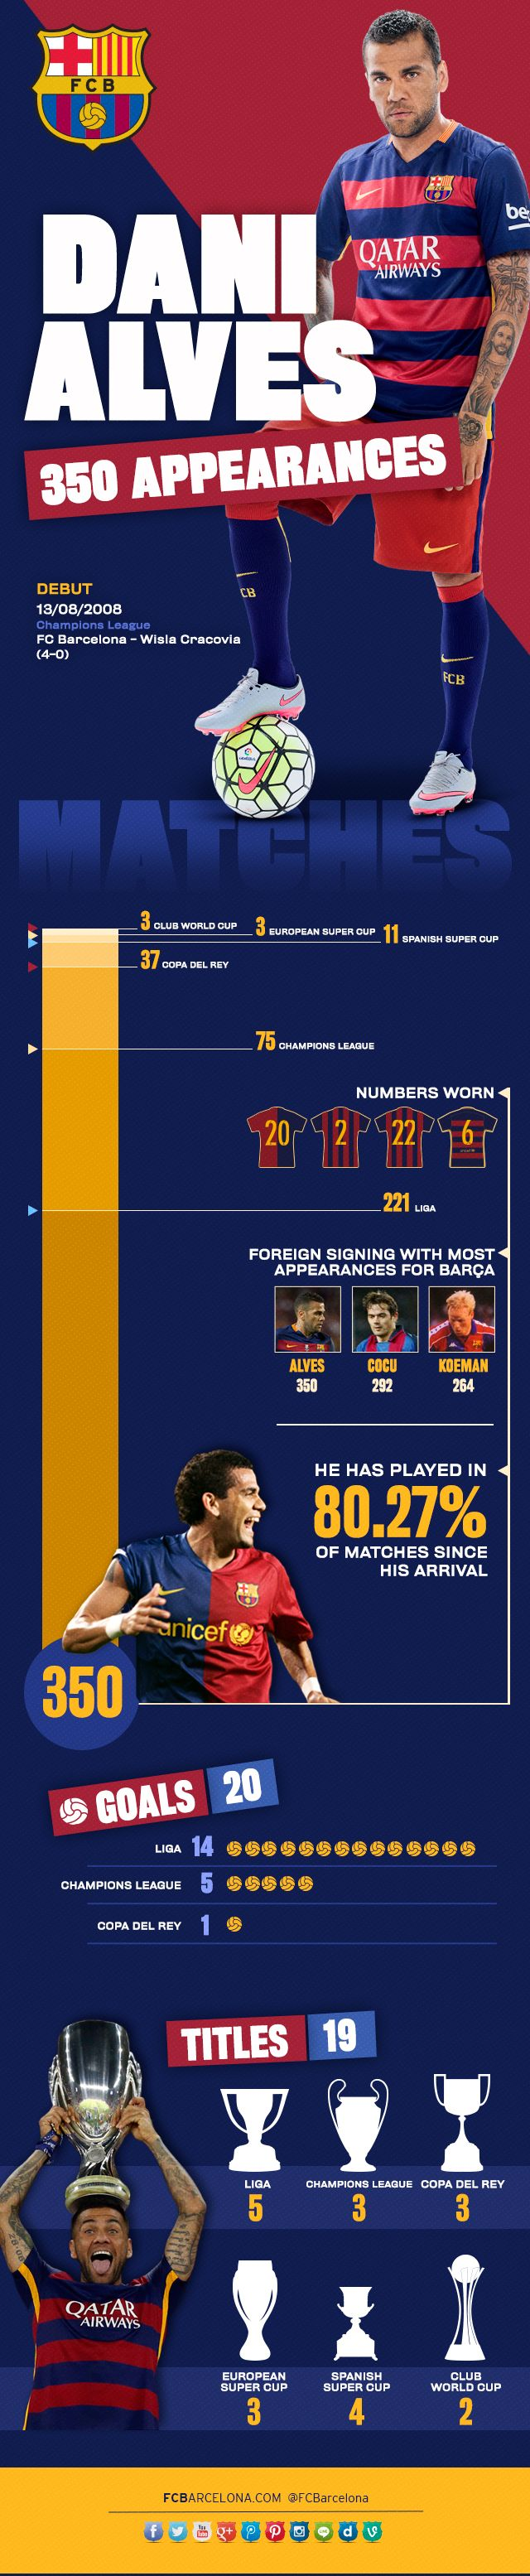 football players who have played more than 1000 games